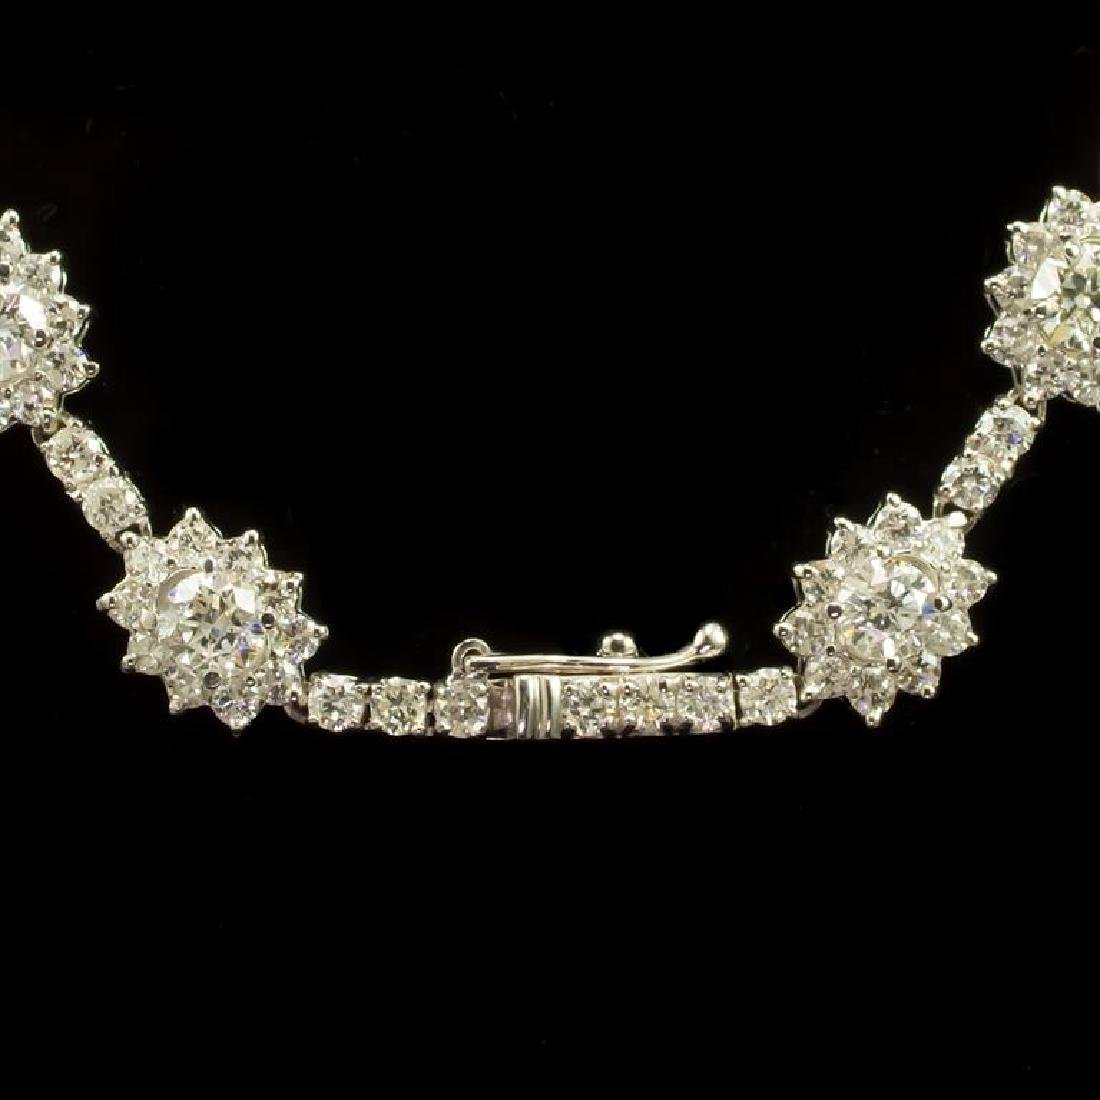 18K Gold 18.22ct Diamond Necklace - 3